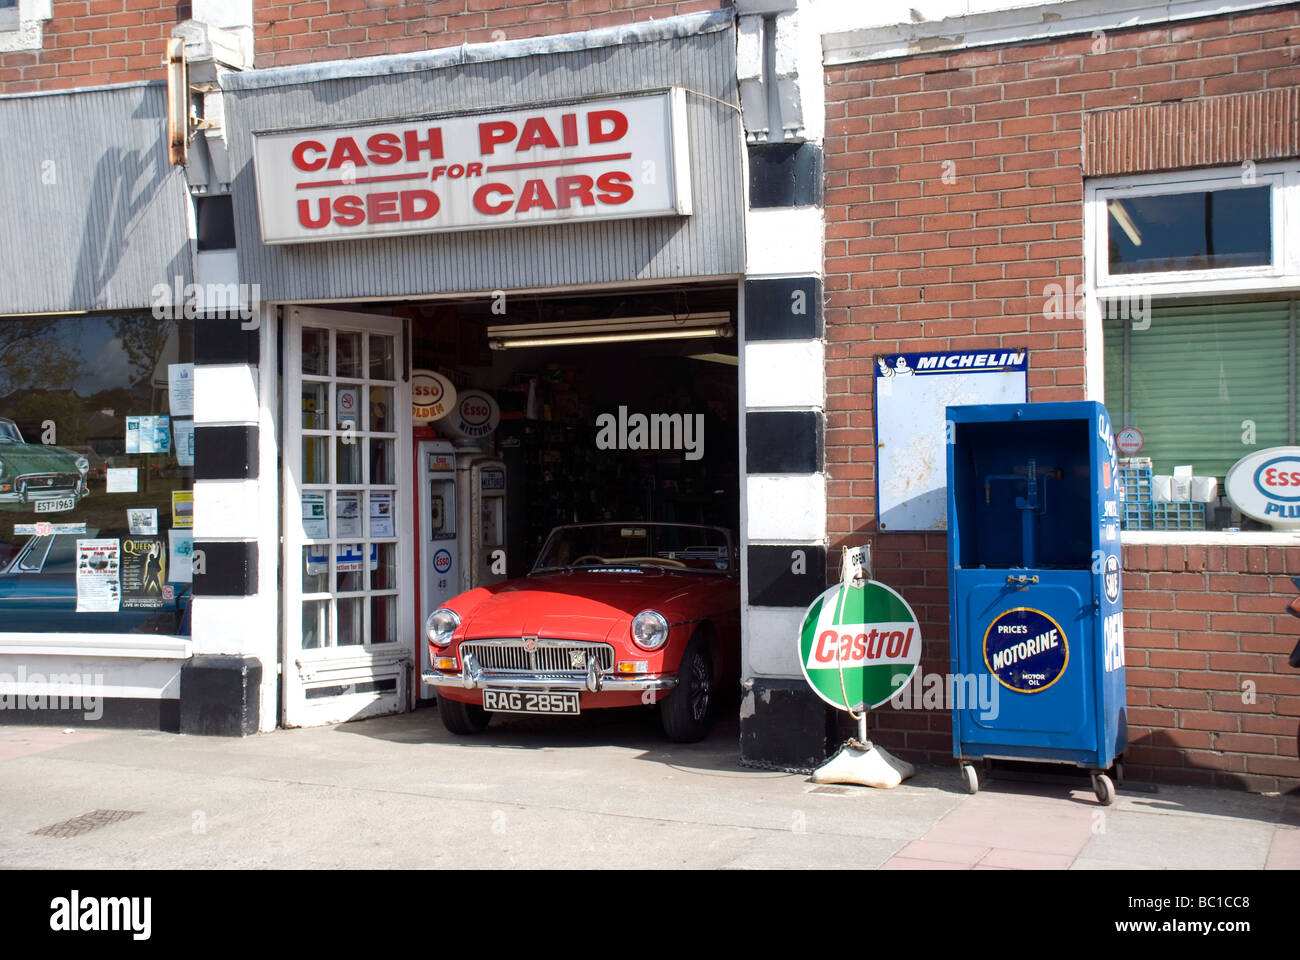 cash paid for used cars,castrol,motorline,MG sports car,color ...